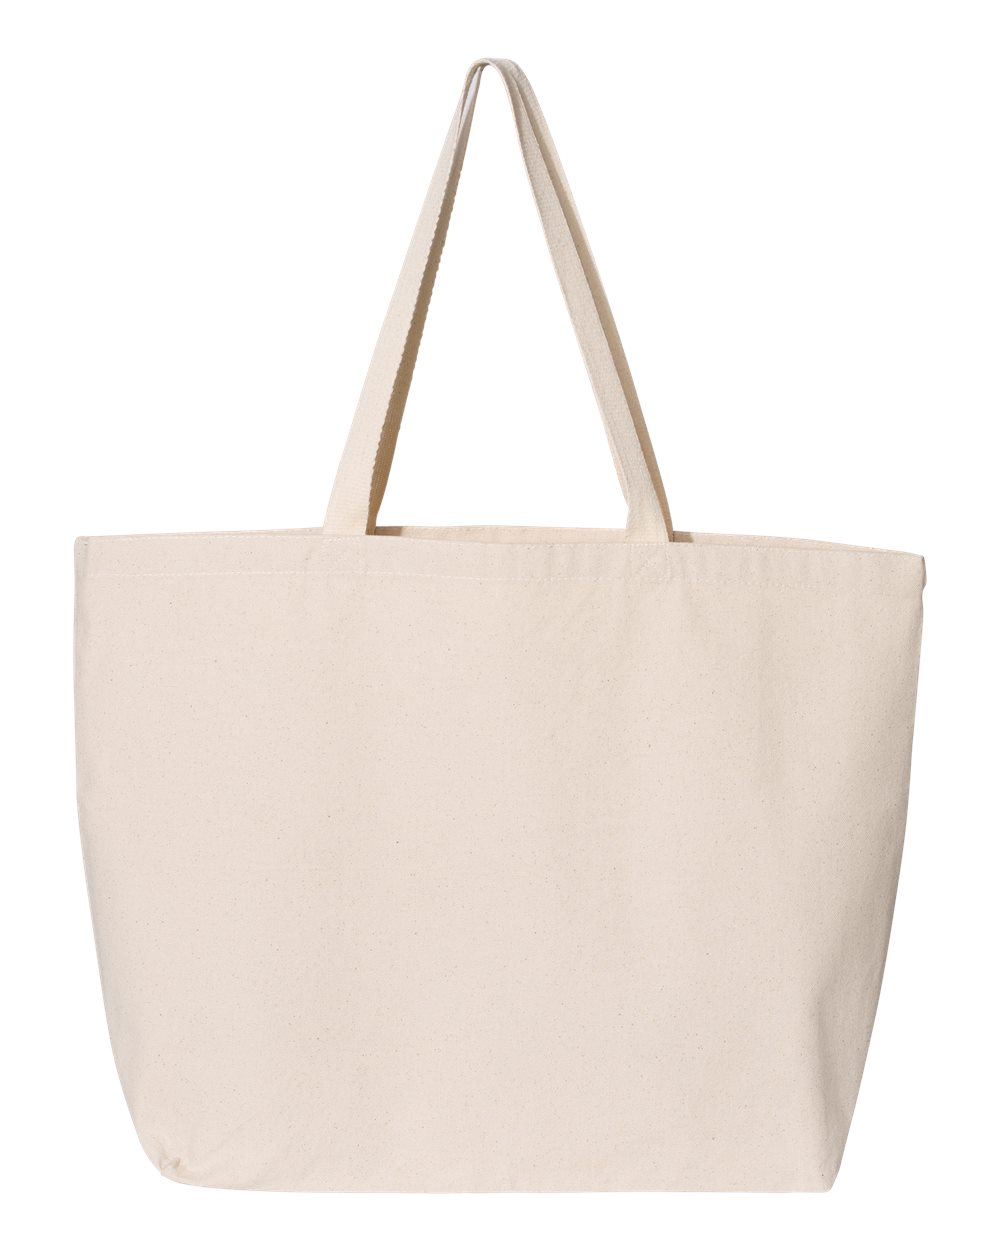 OAD OAD108 - 12 oz. Cotton Canvas Tote